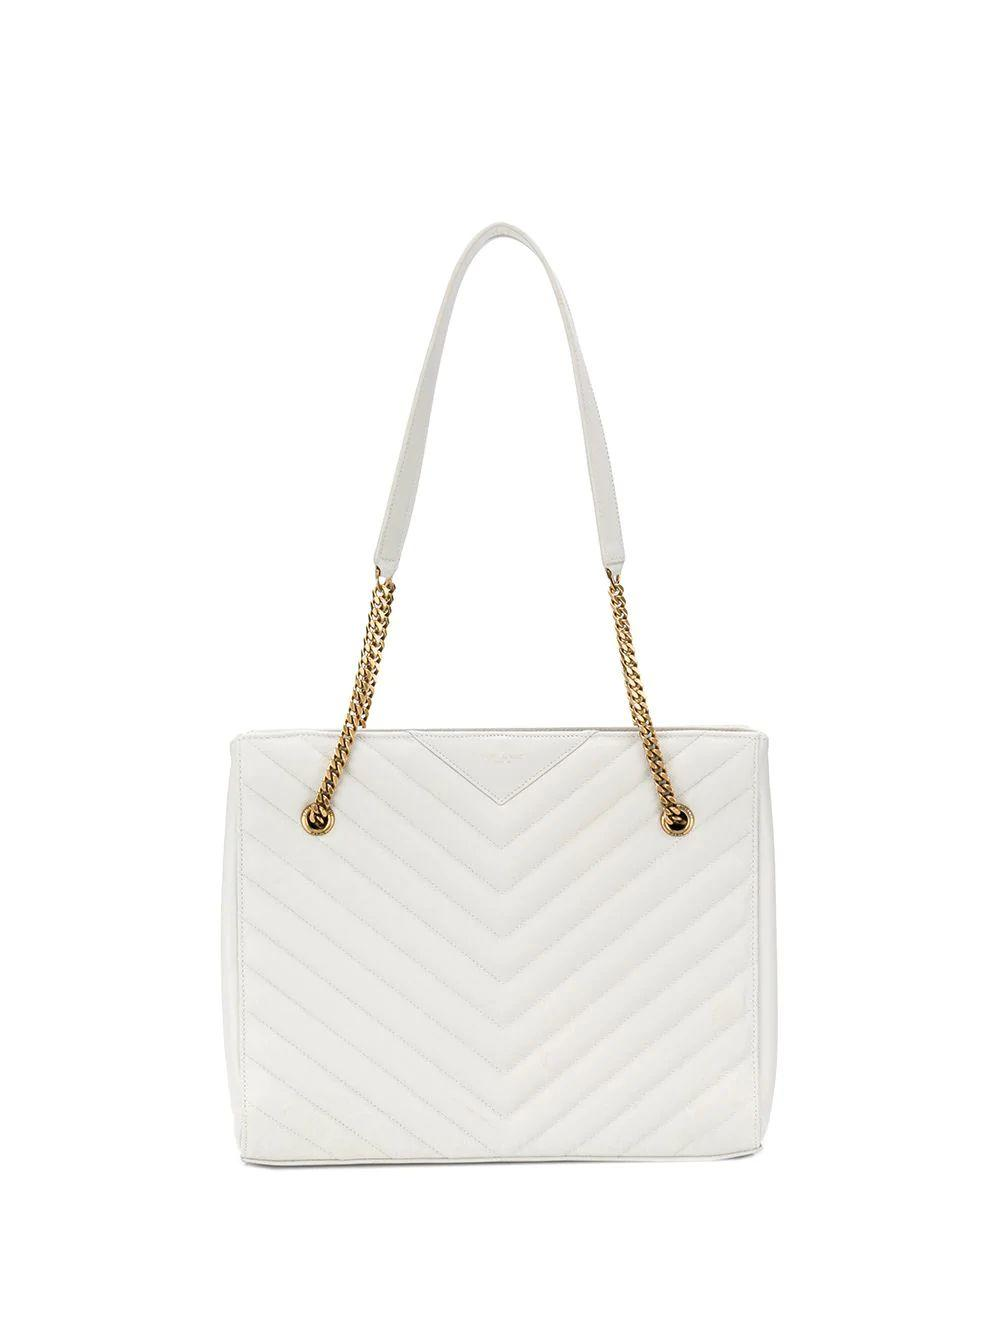 Tribeca Medium Bag With Chain